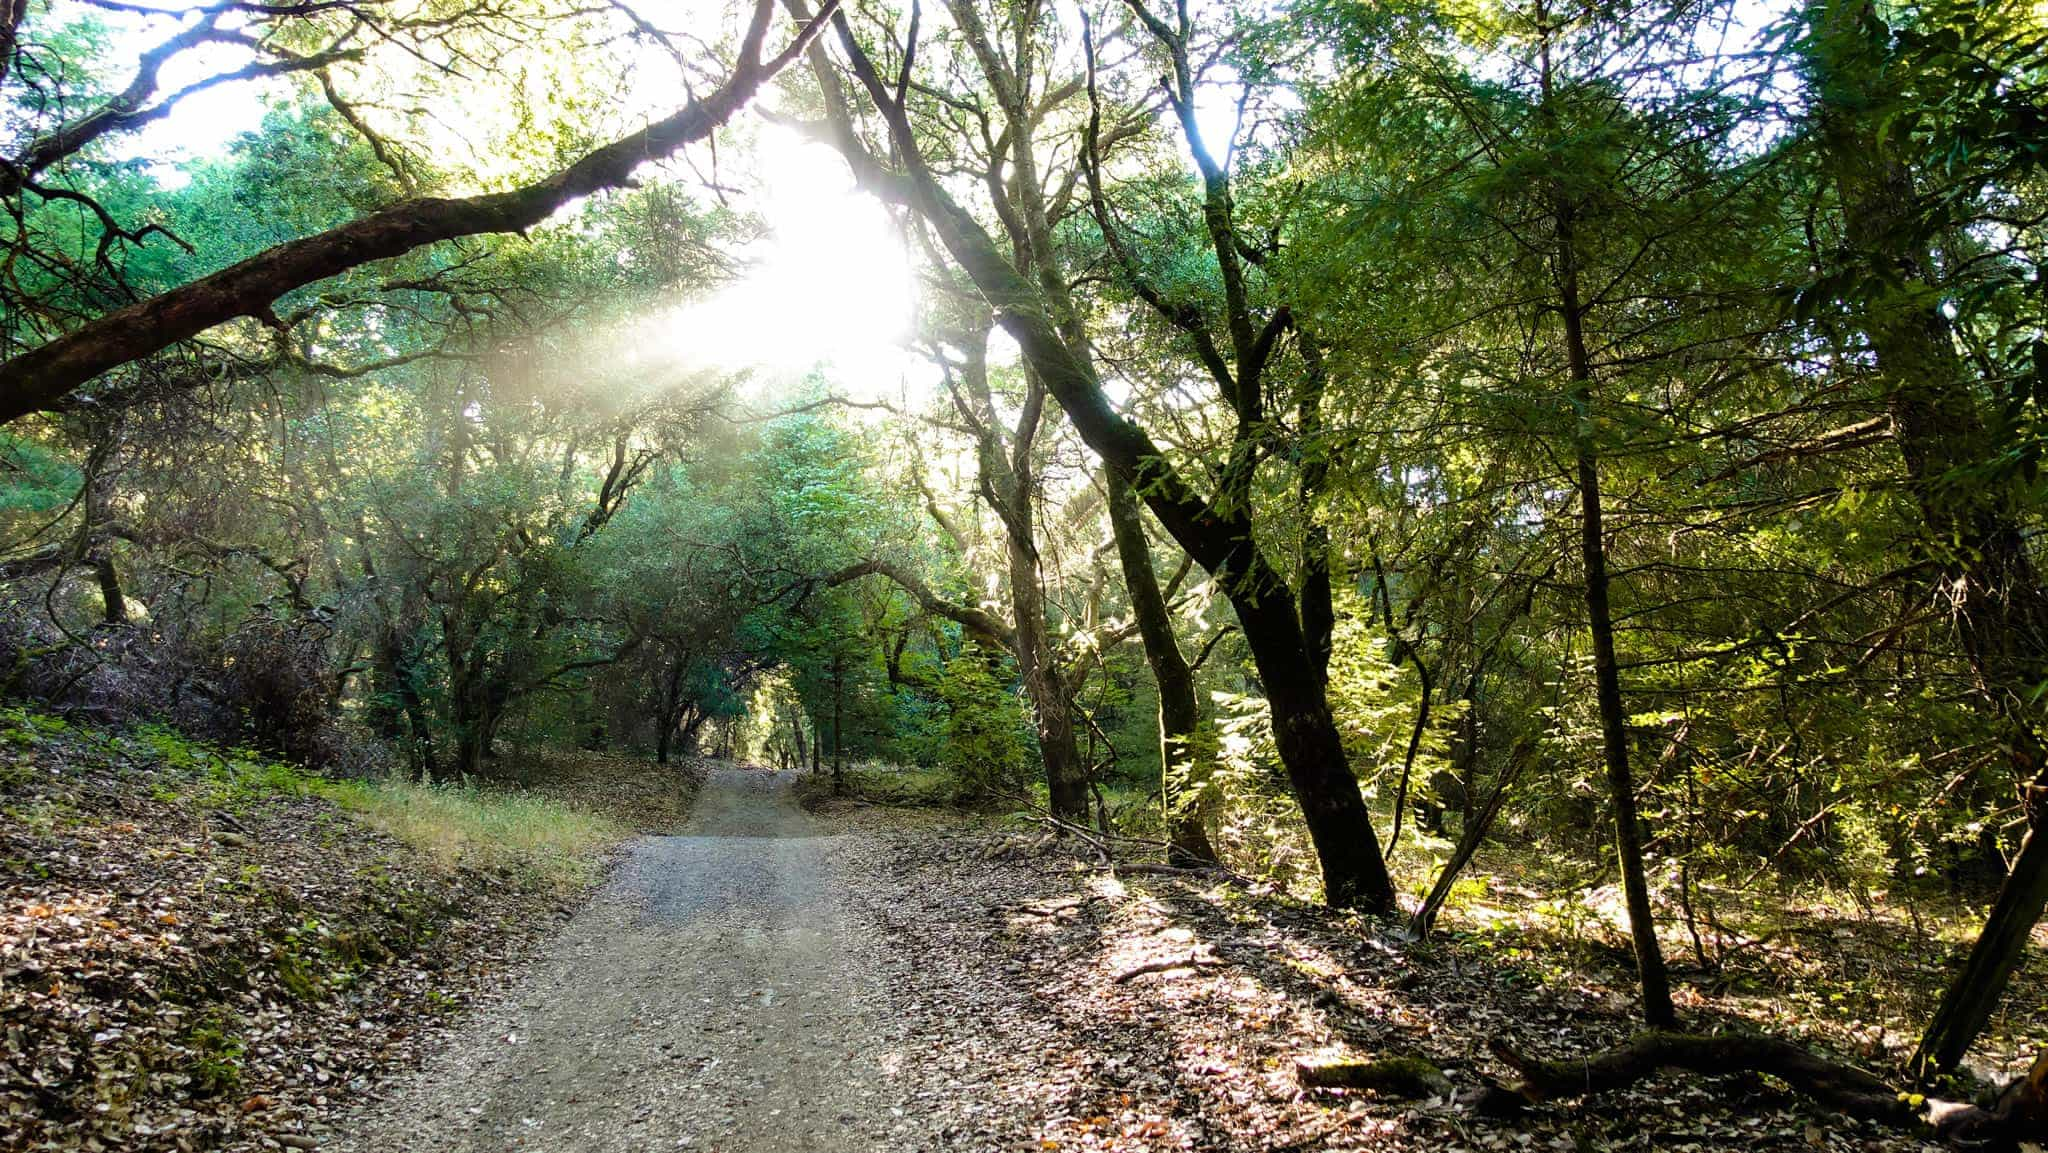 Morning Dawns as the Hiking Trail Gently Begins in Shiloh Regional Park